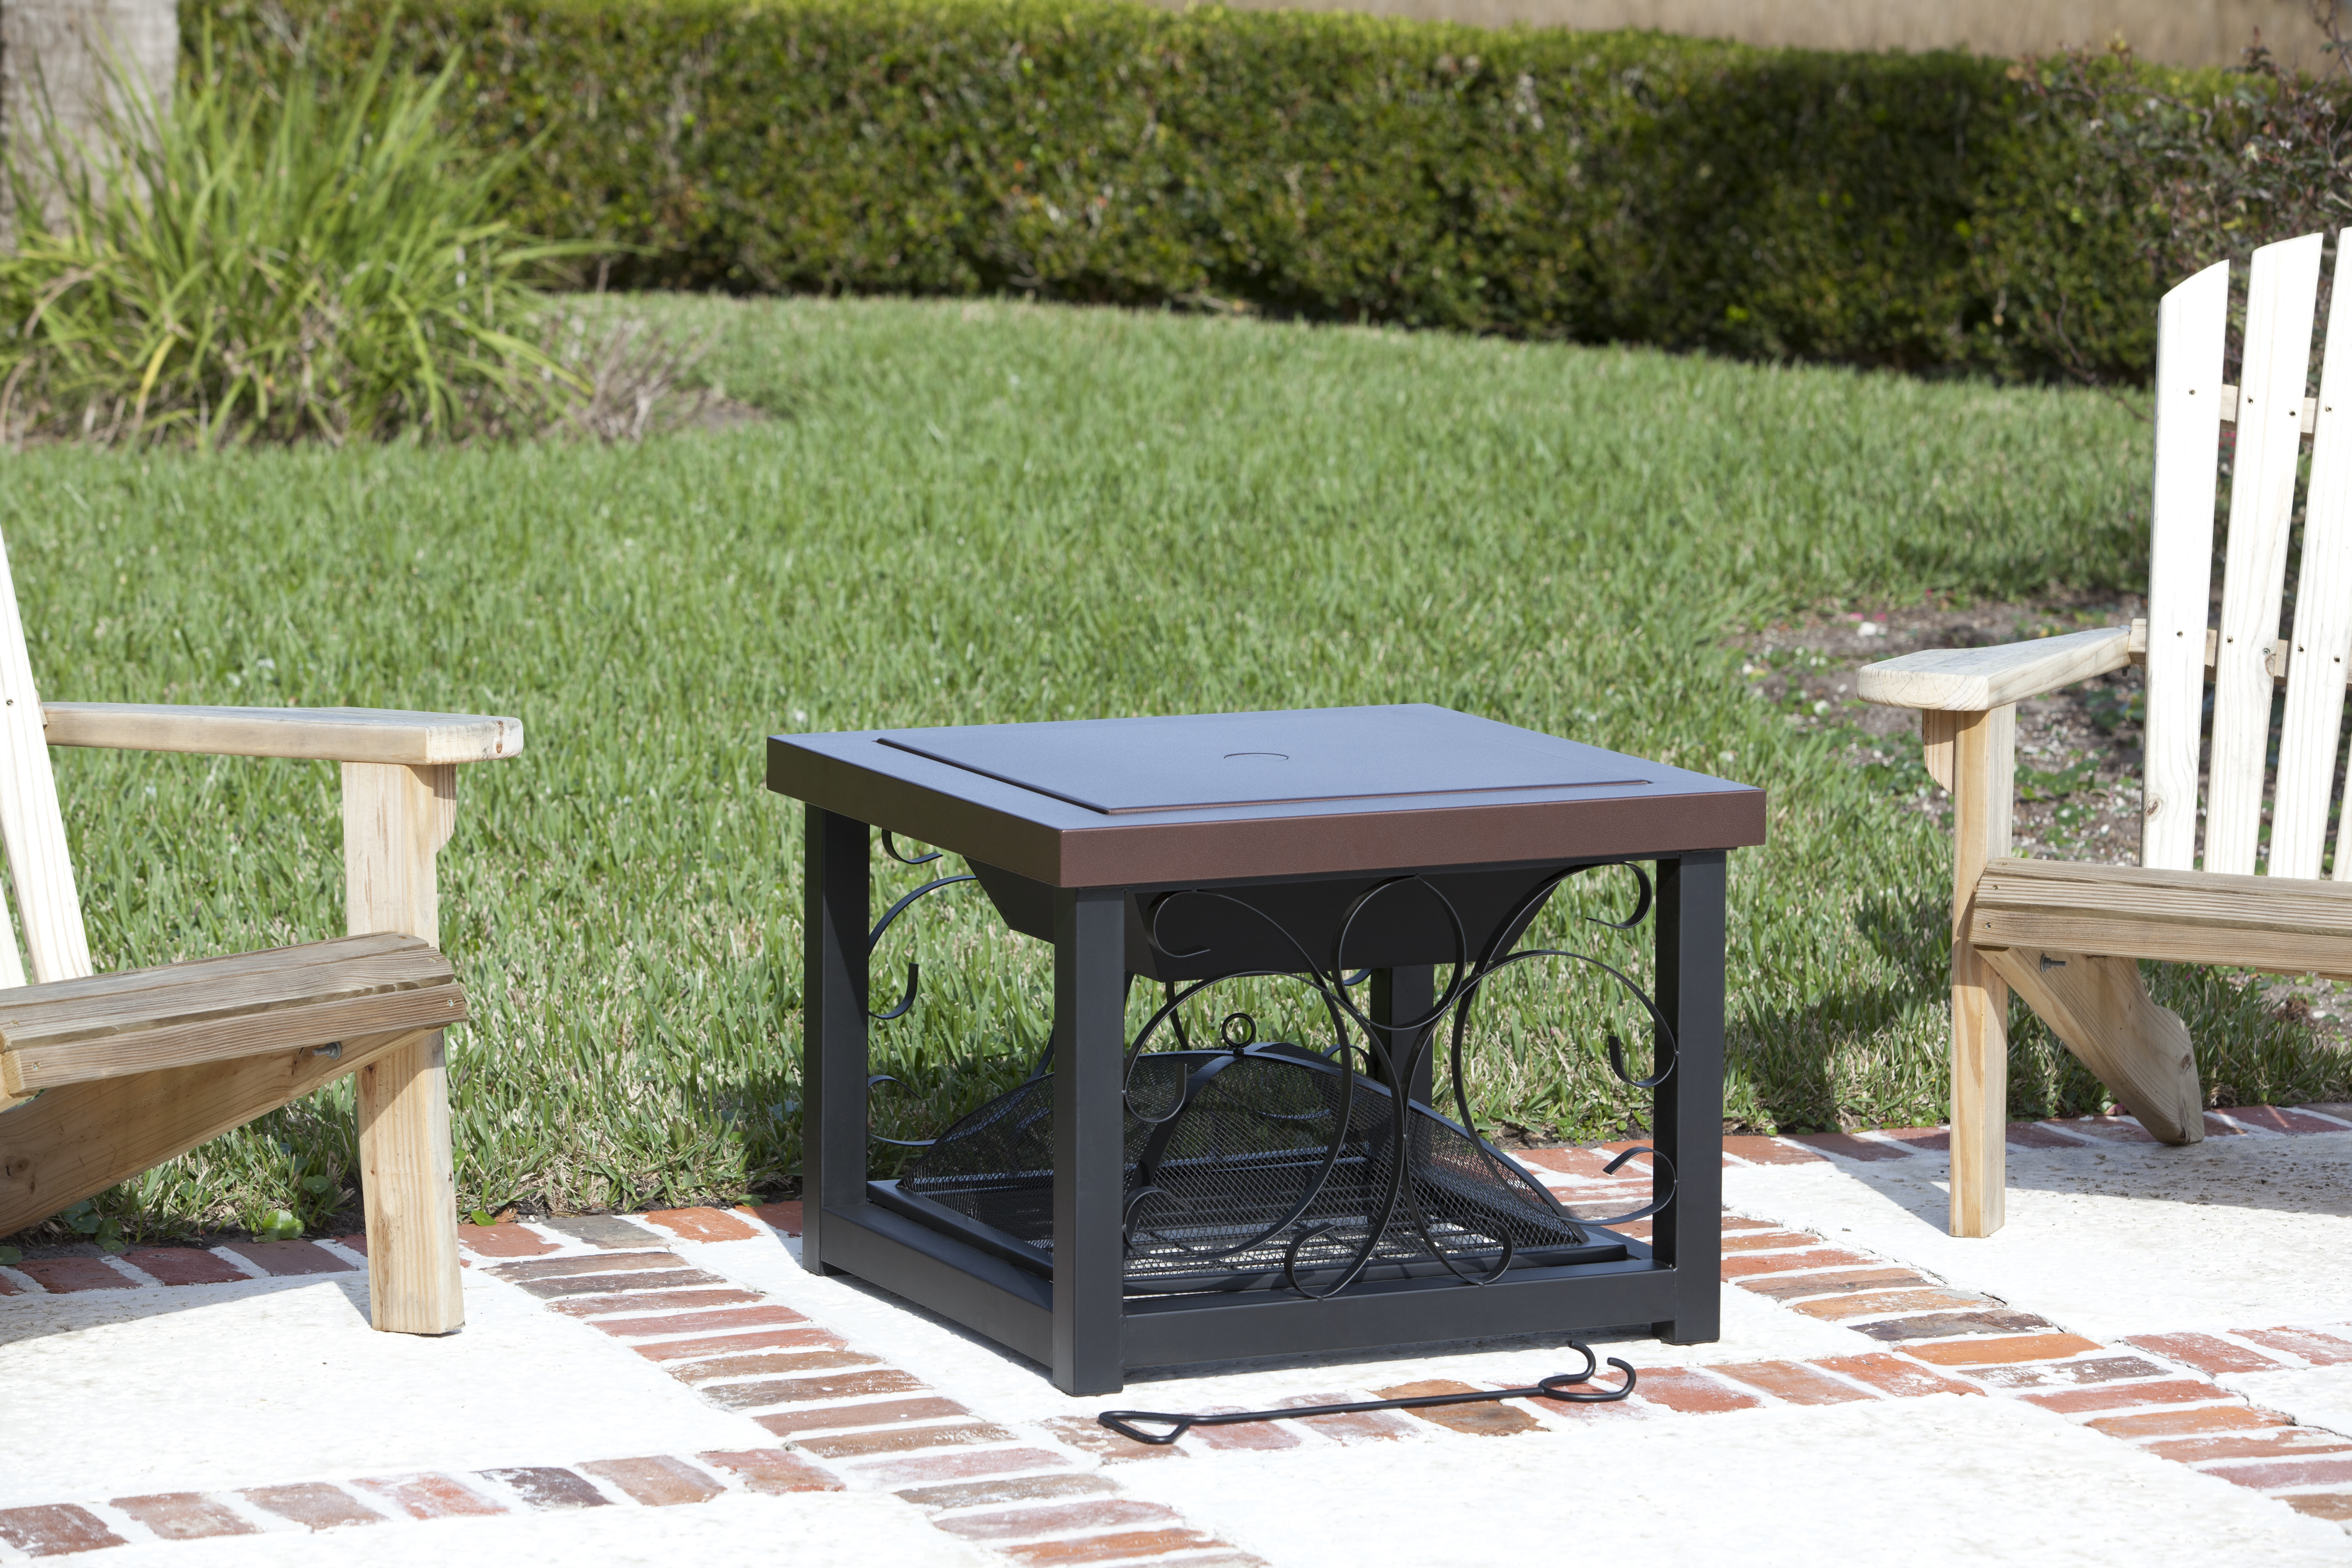 Hammer Tone Bronze Finish Tail Table Fire Pit Costco Com Exclusive